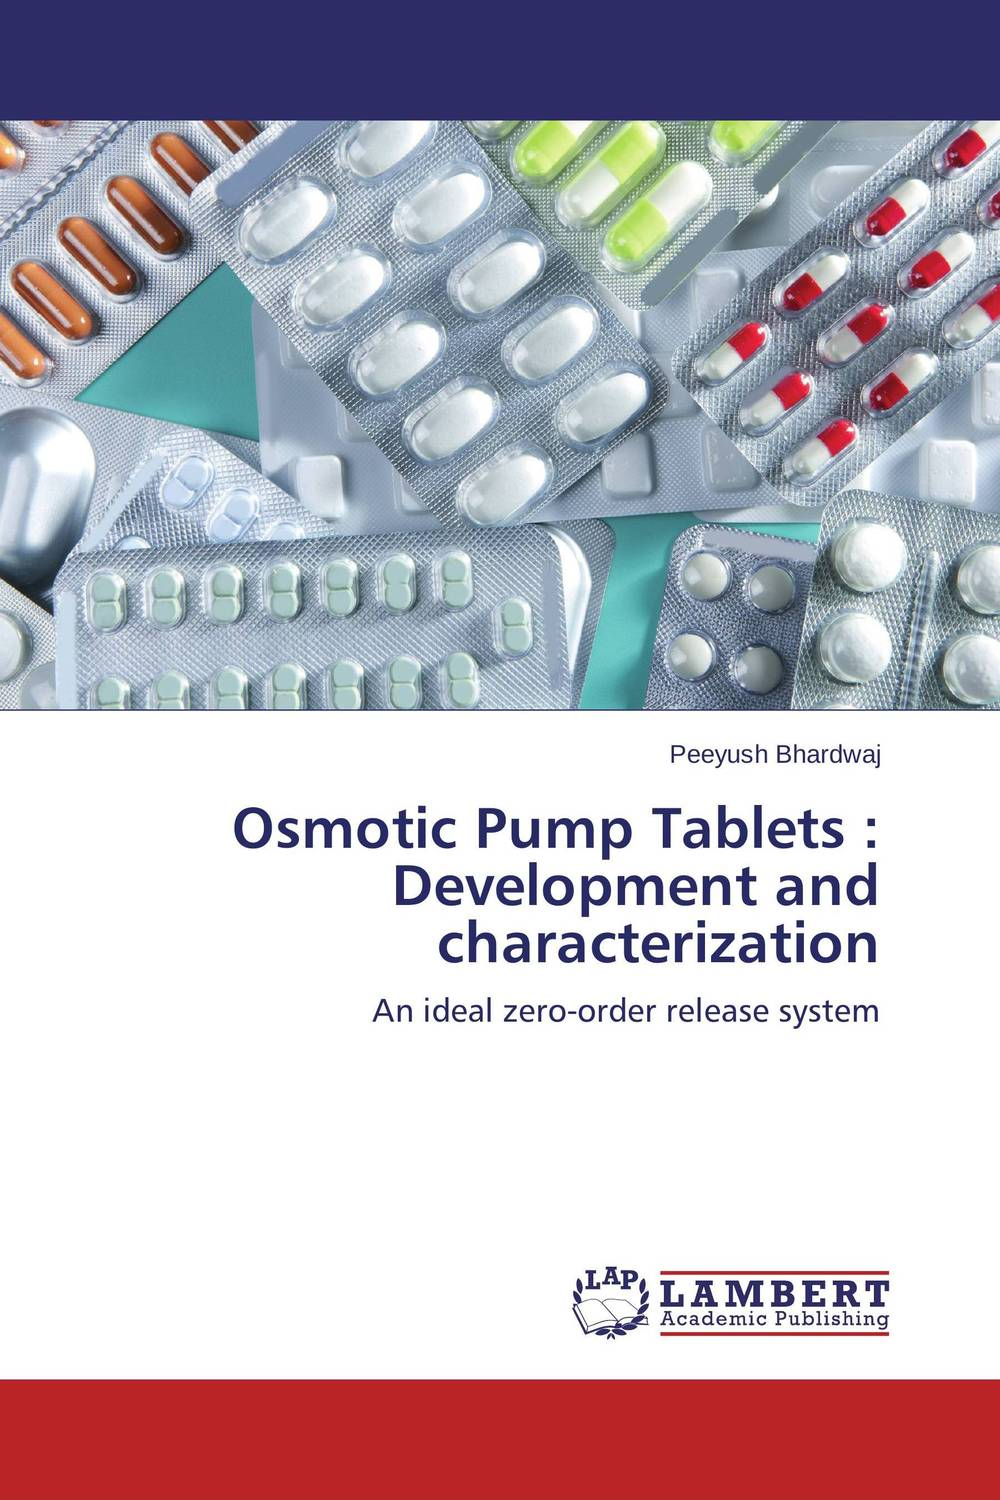 Osmotic Pump Tablets : Development and characterization adm00397 programmers development systems mr li